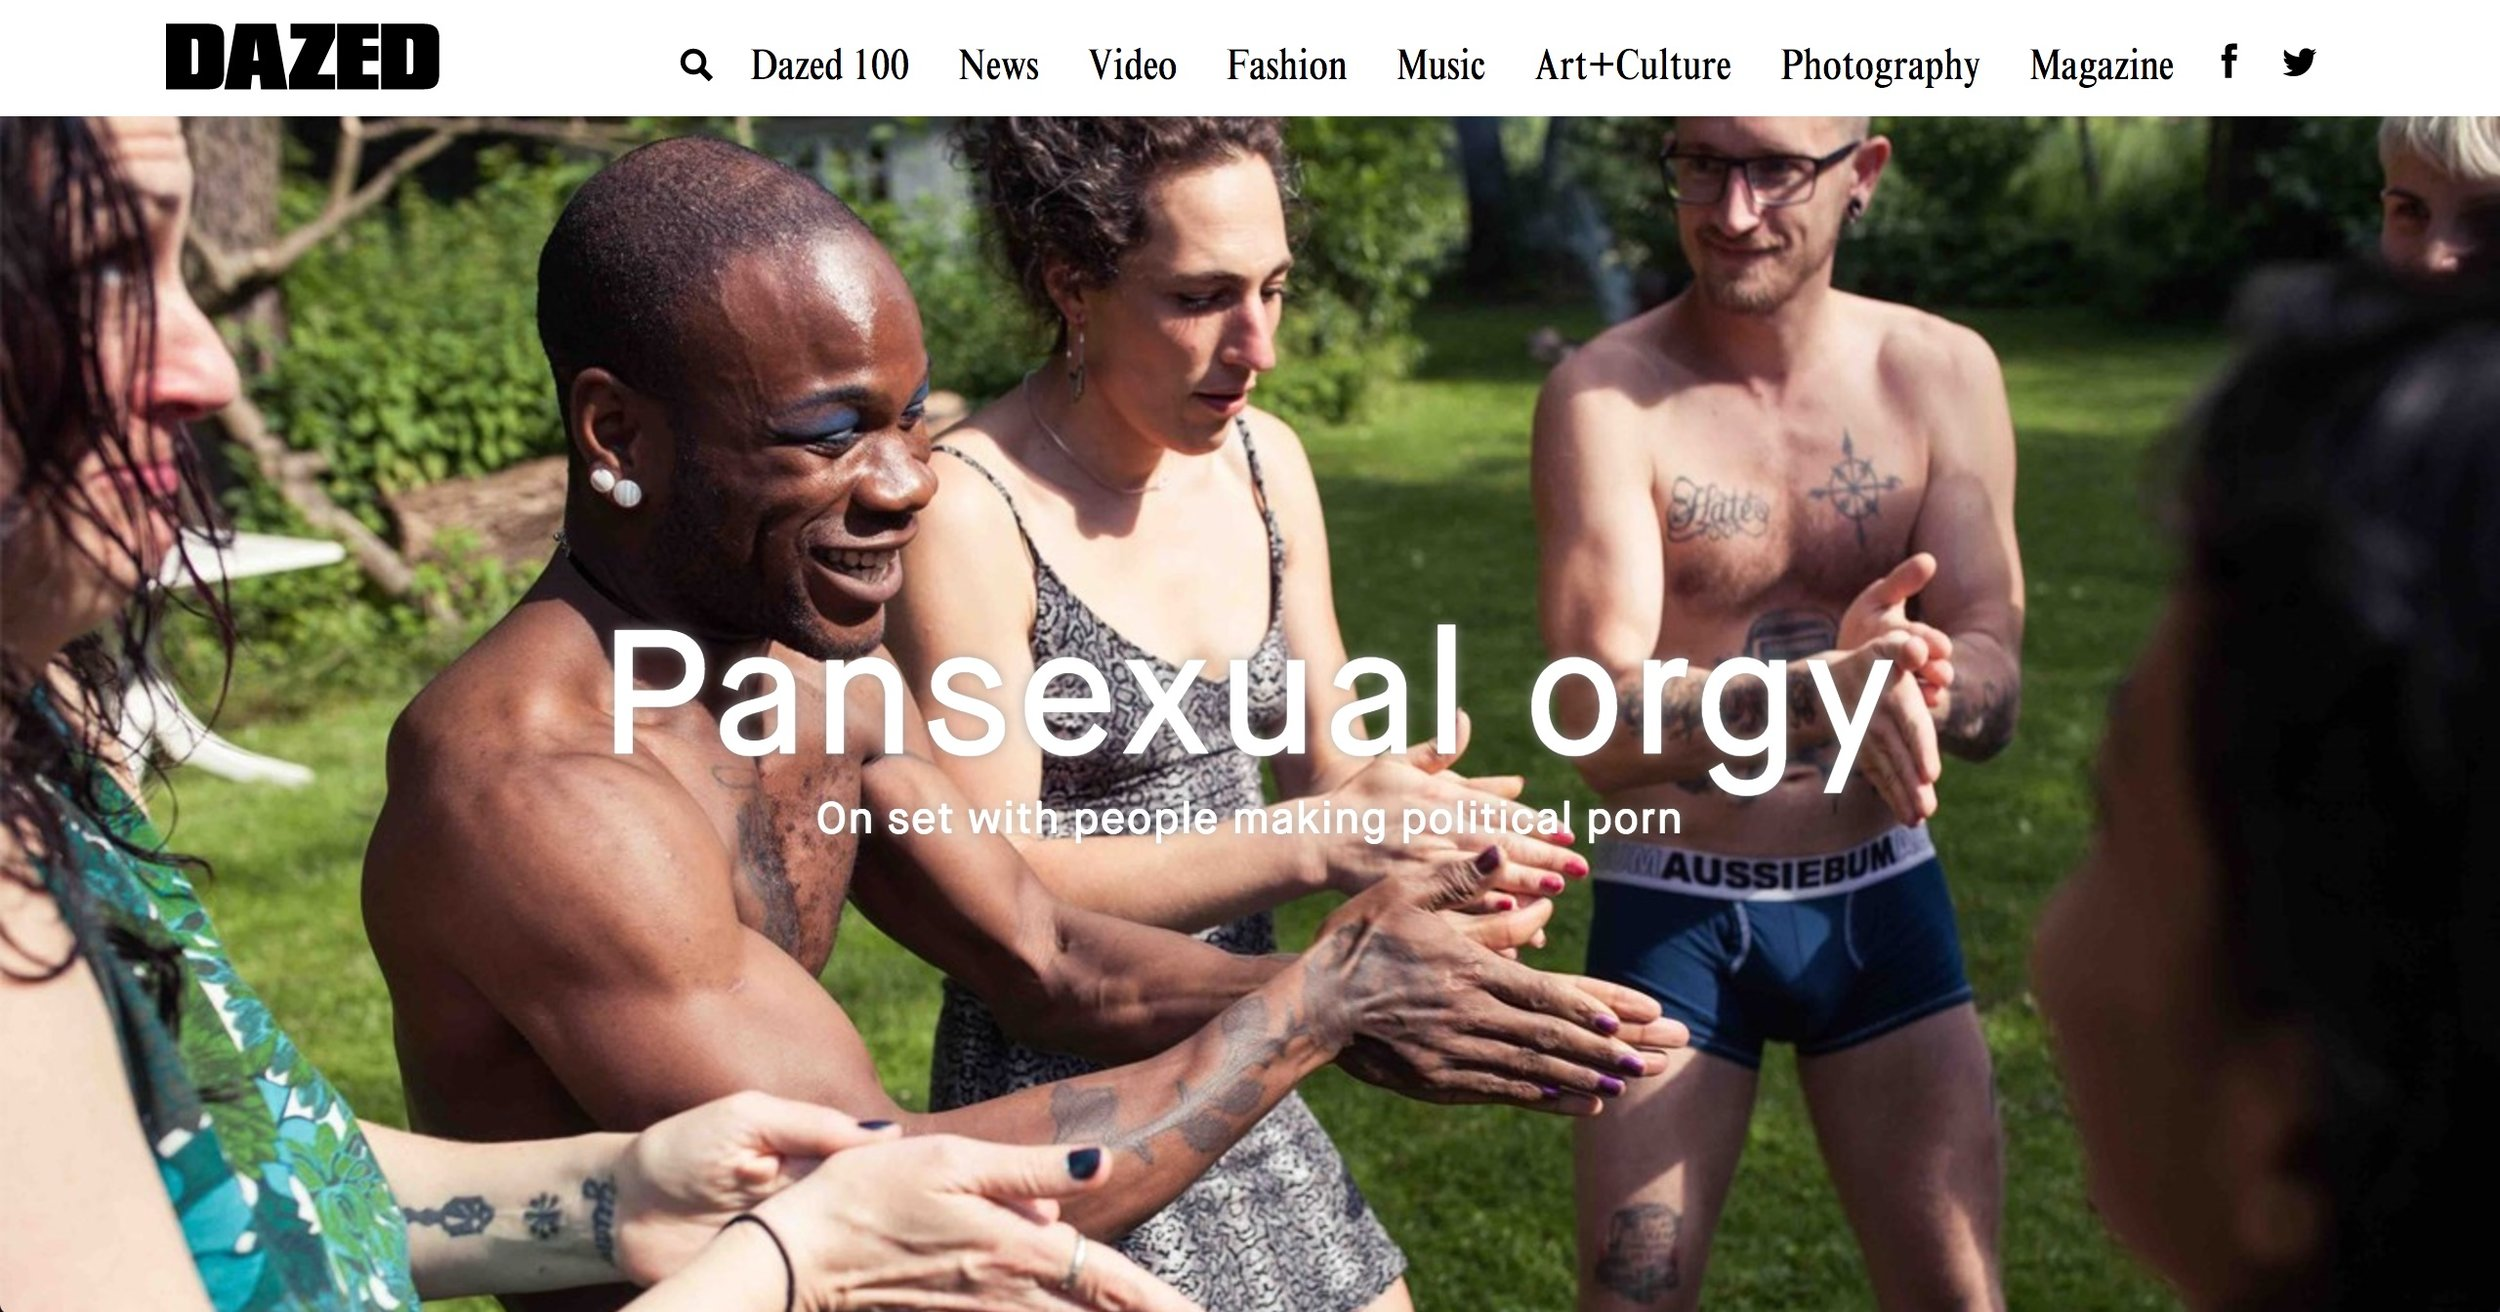 Dazed pansexual orgy front page.jpg